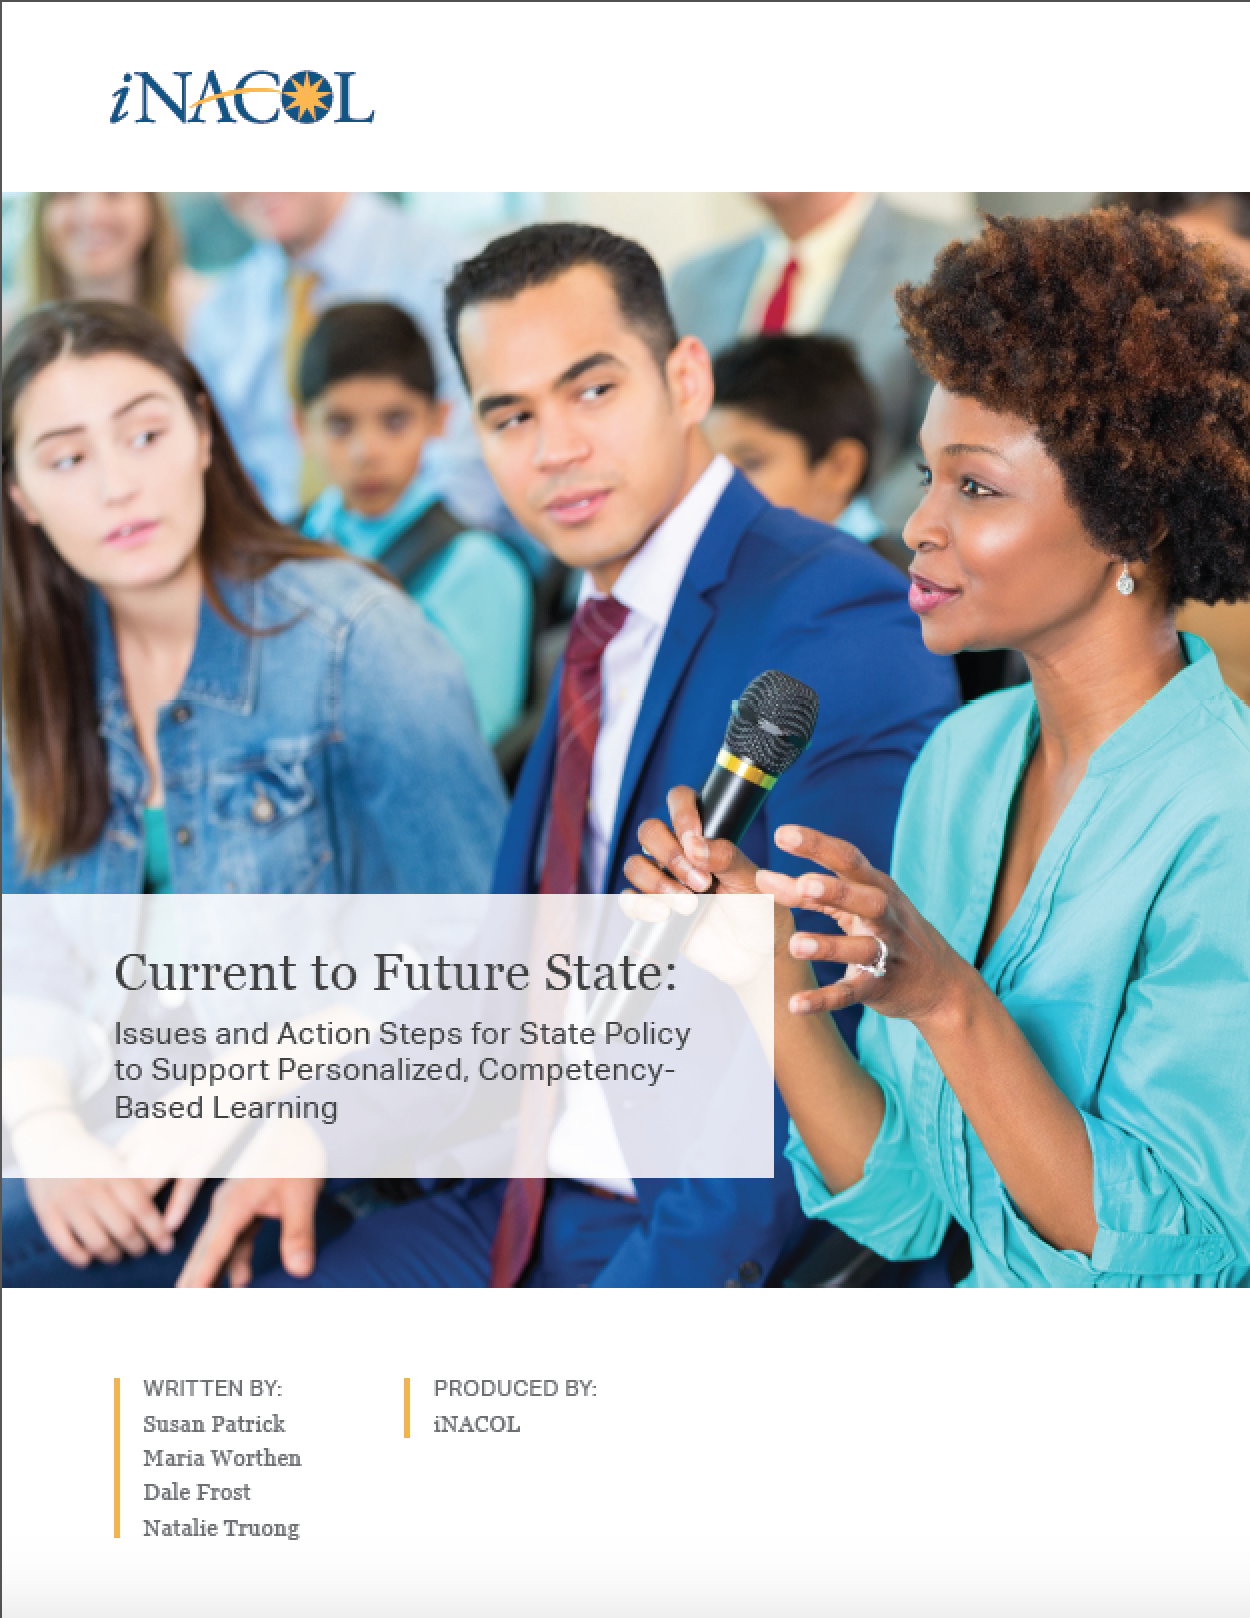 Current to Future State: Issues and Action Steps for State Policy to Support Personalized, Competency-Based Learning - Aurora Institute